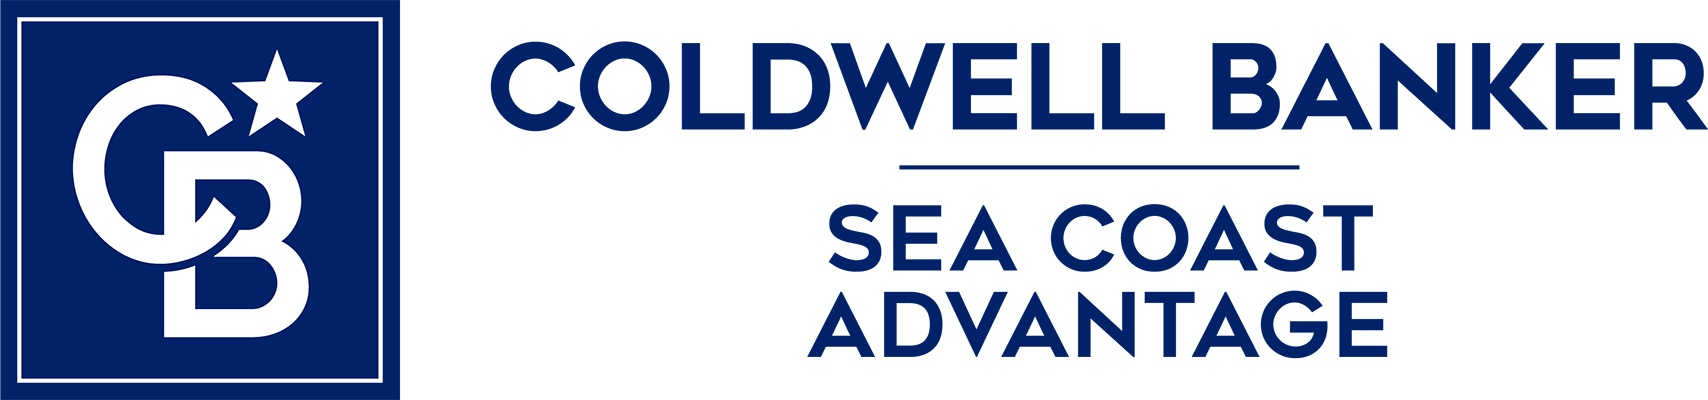 Susan Adkin - Coldwell Banker Sea Coast Advantage Realty